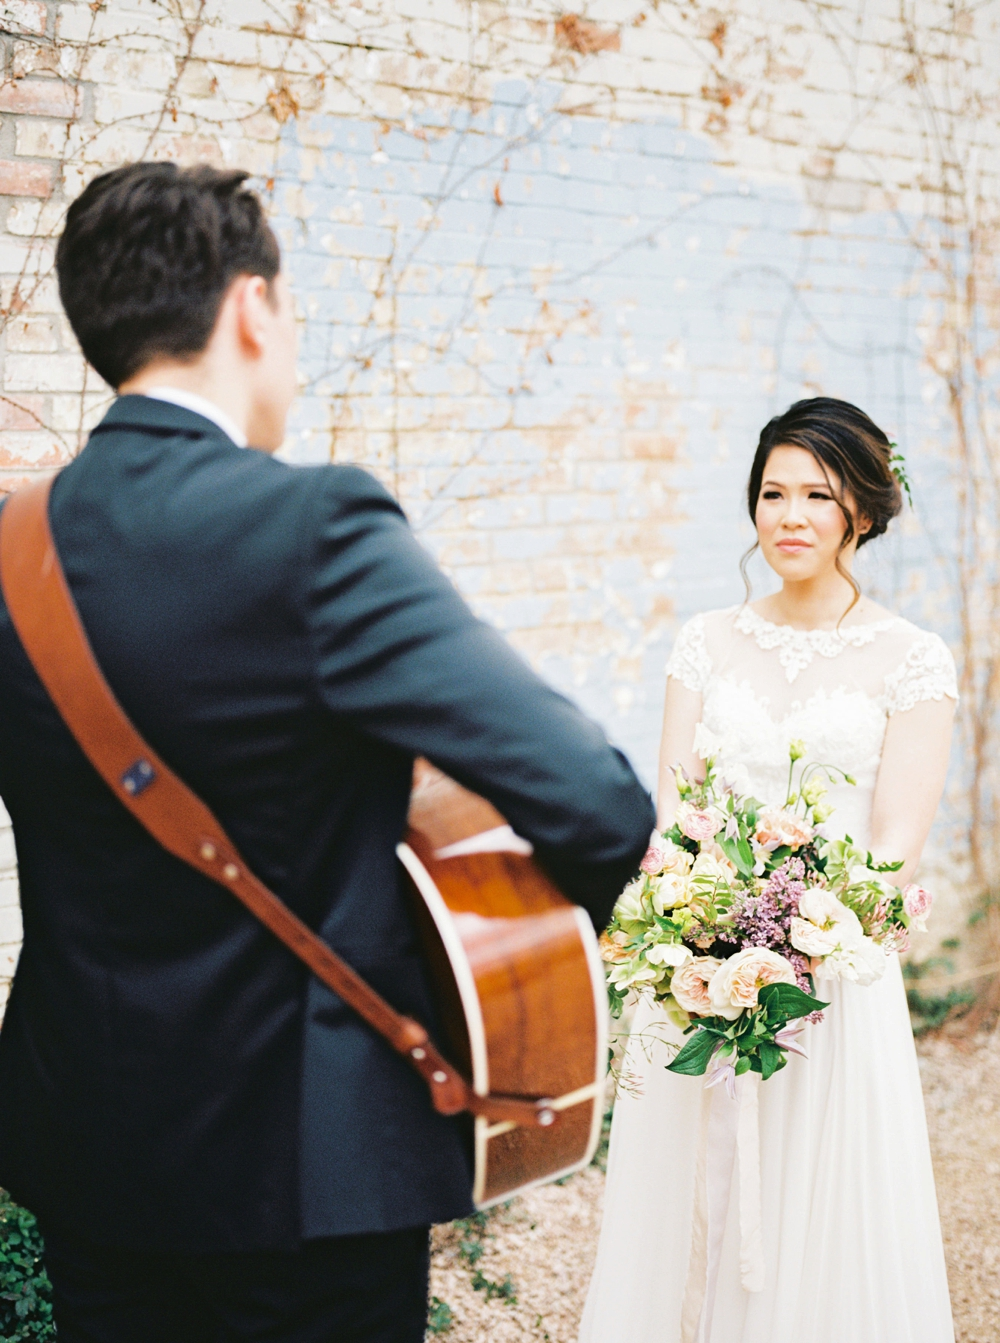 Fort Worth Wedding Planning and Event Design